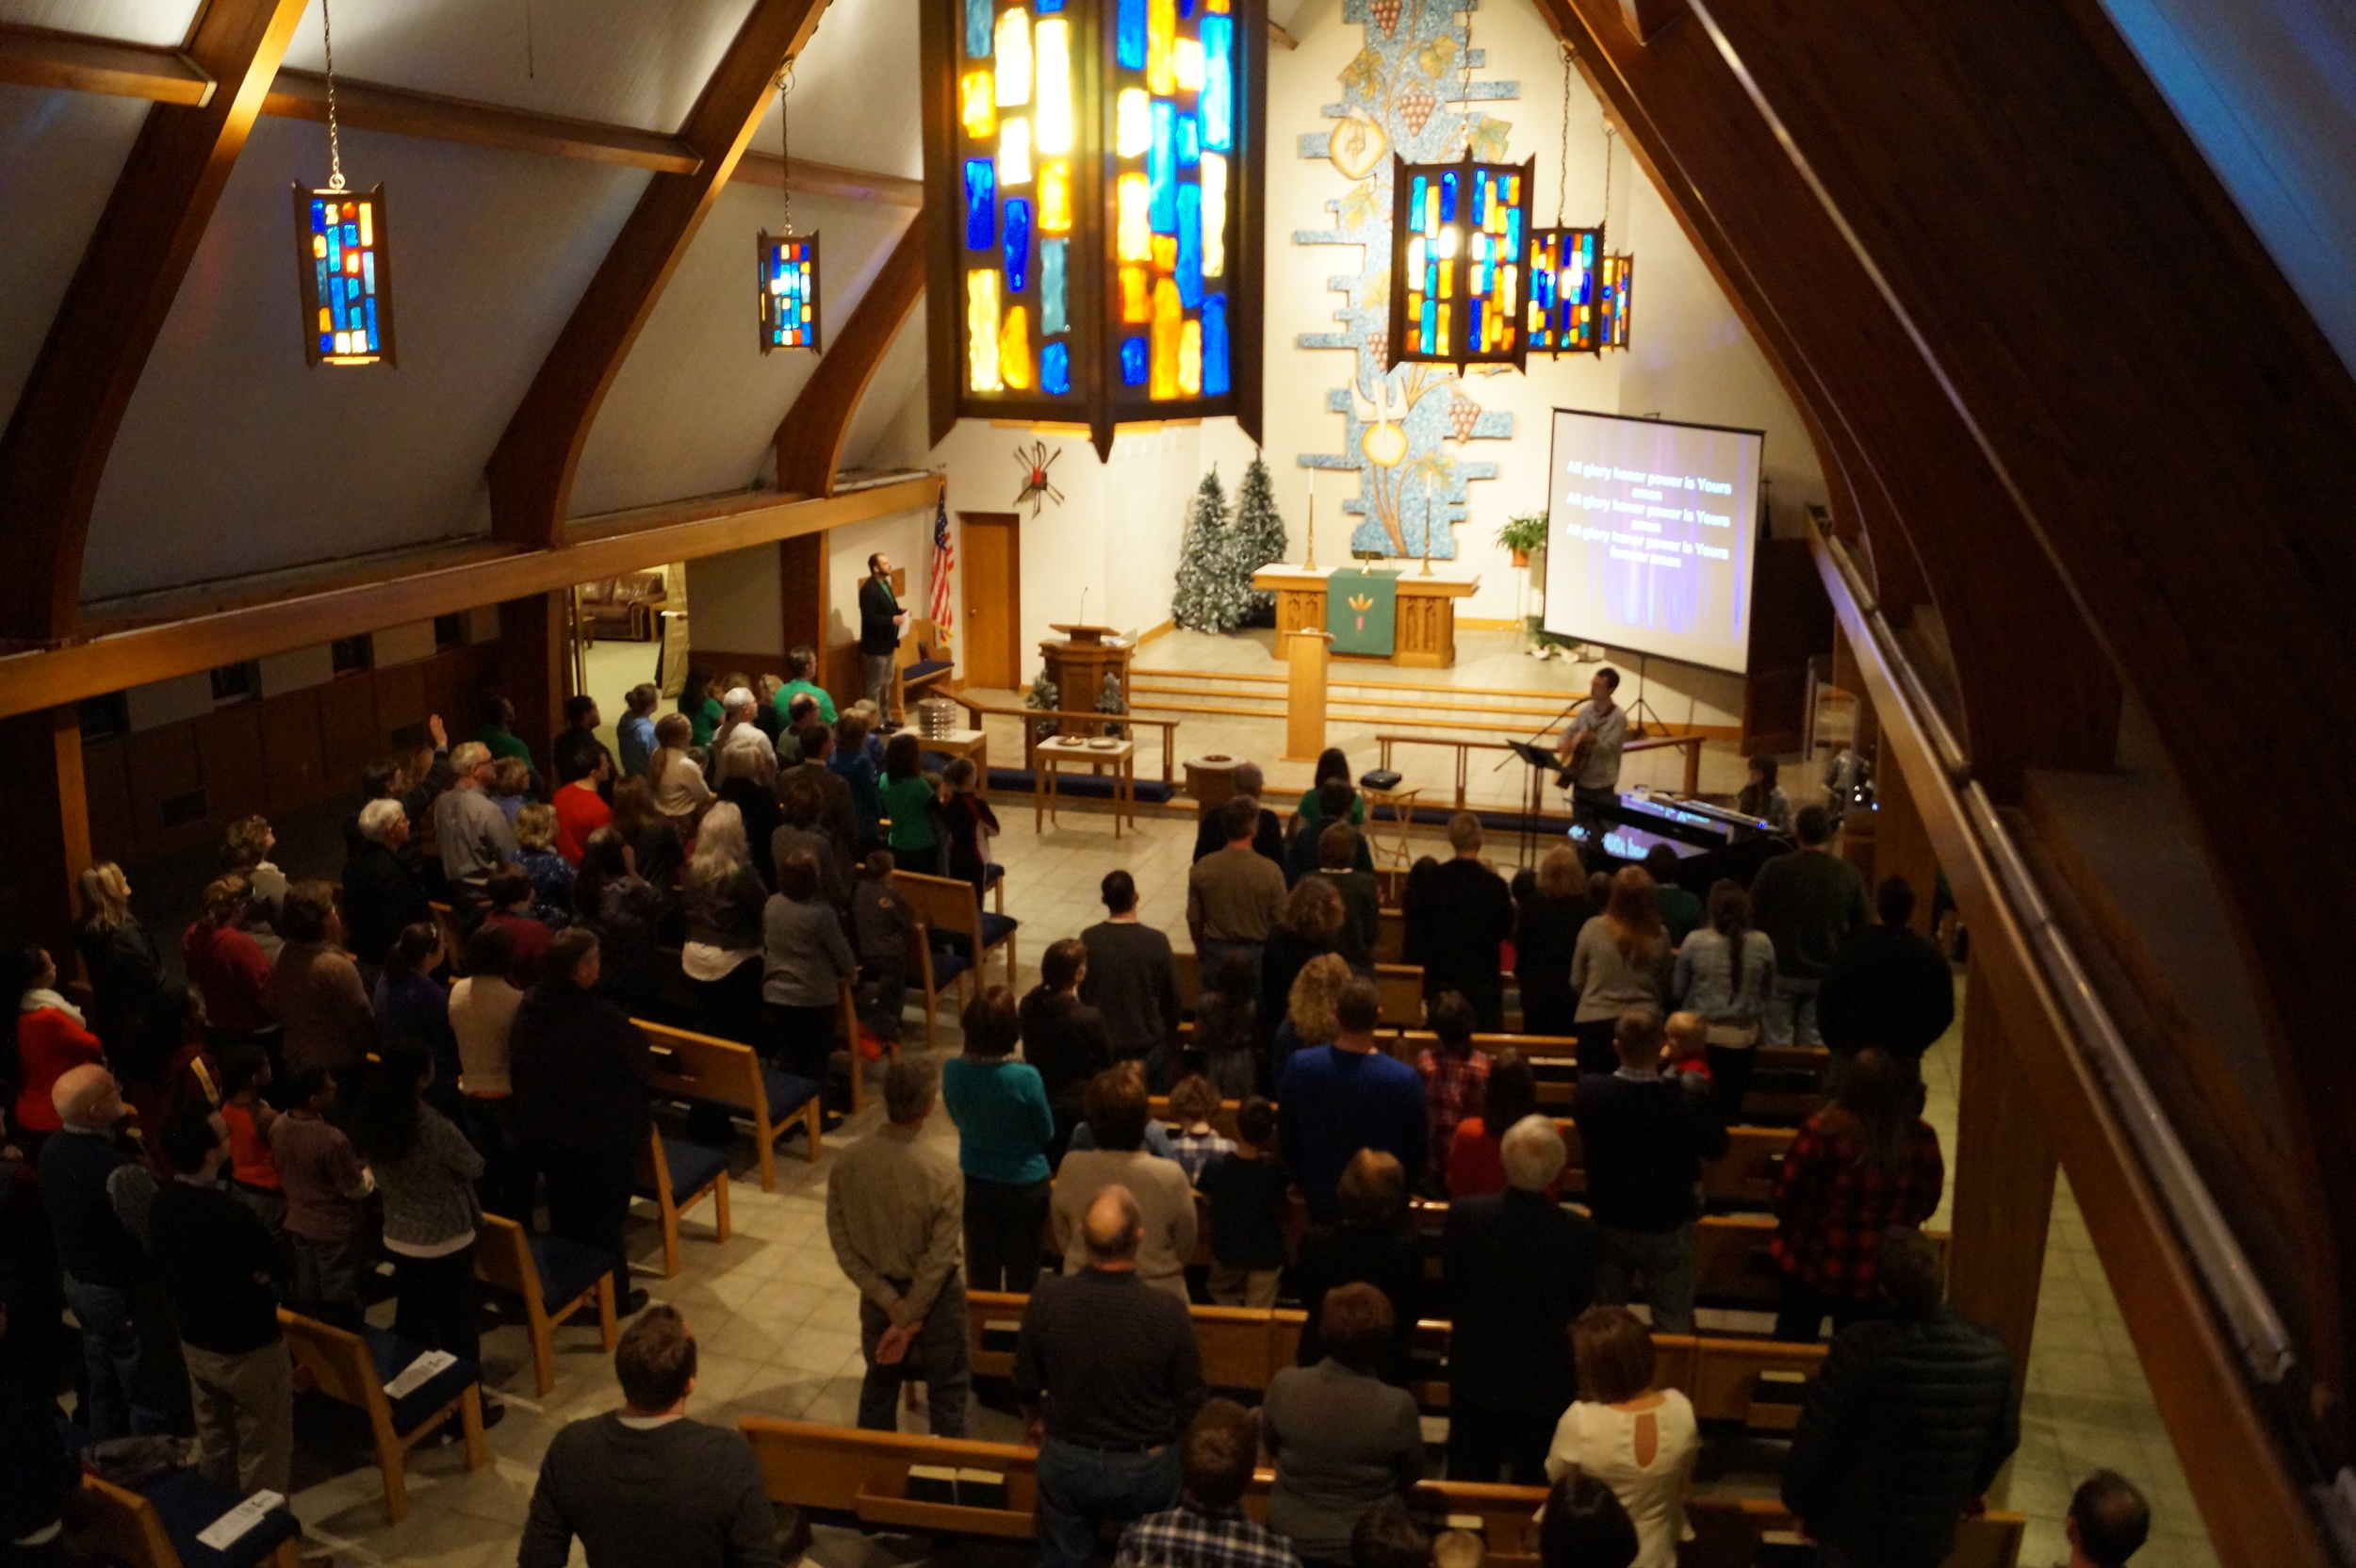 Worshippers gather at Genesis Church's launch service on January 25.